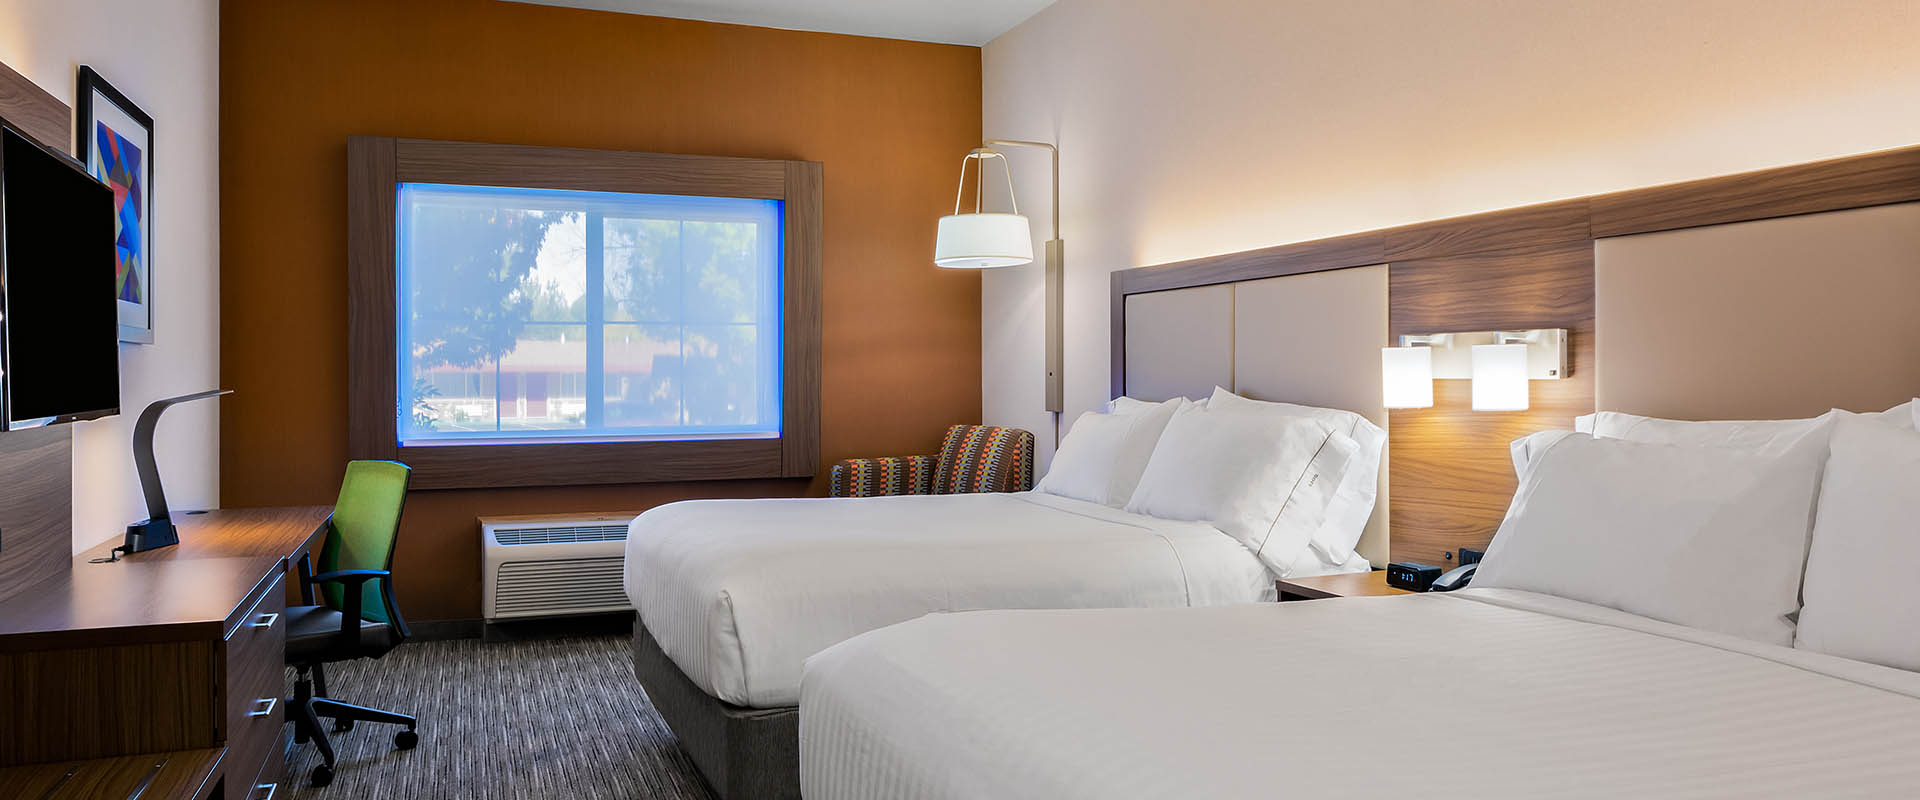 Oroville, California, Hotel, Lake Oroville, rooms, suites